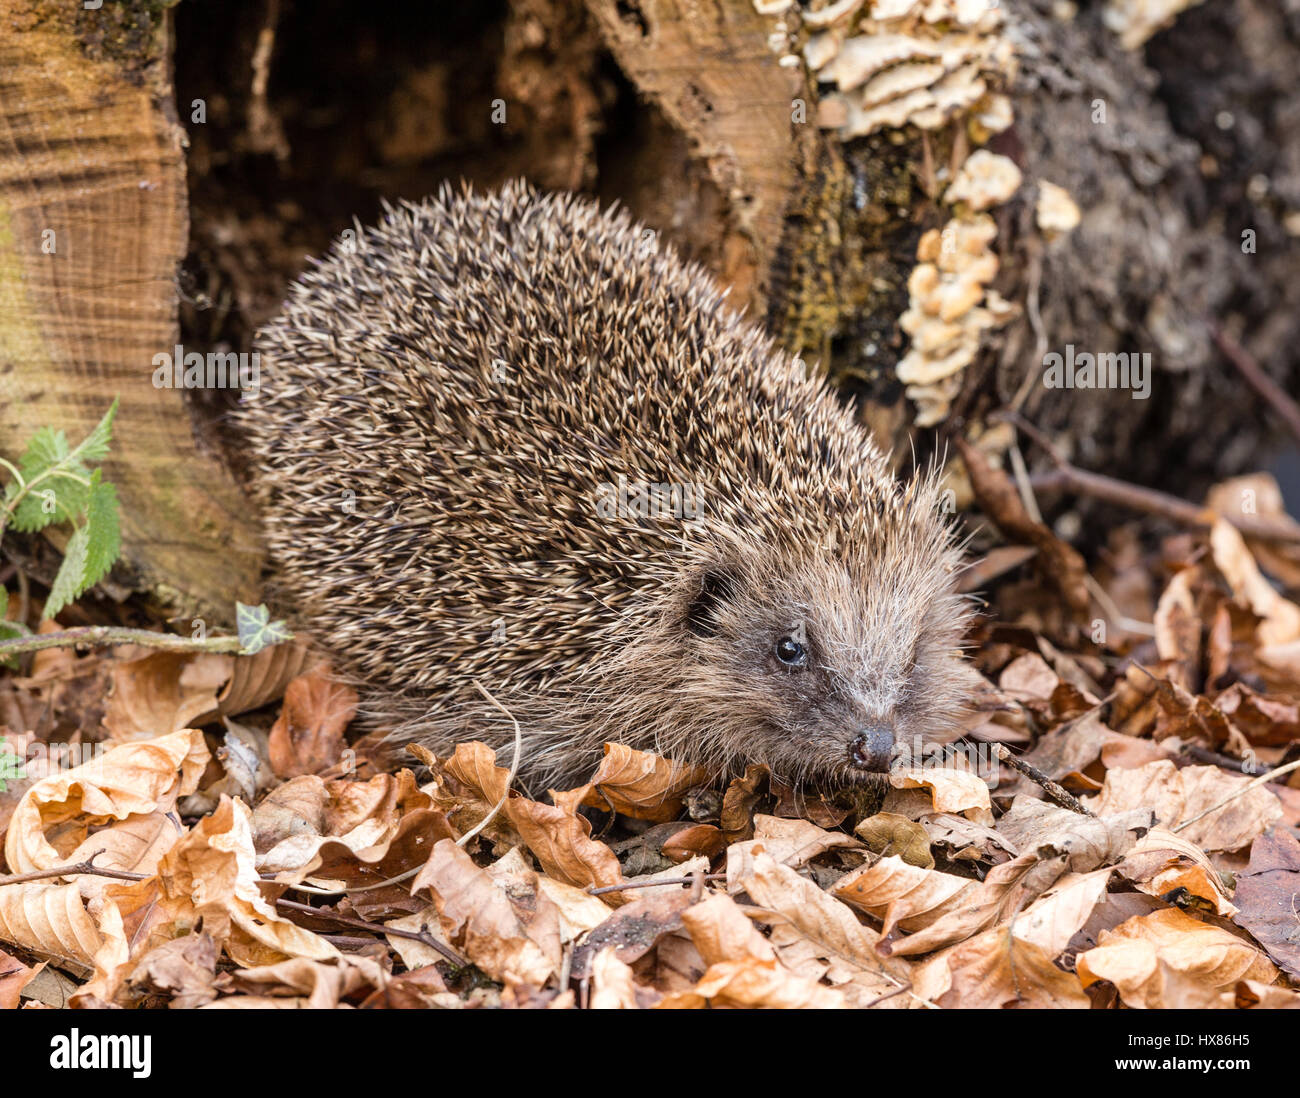 Hedgehog, wild, native, European hedgehog in natural woodland setting with Autumn leaves and Fungi.  Facing to the - Stock Image